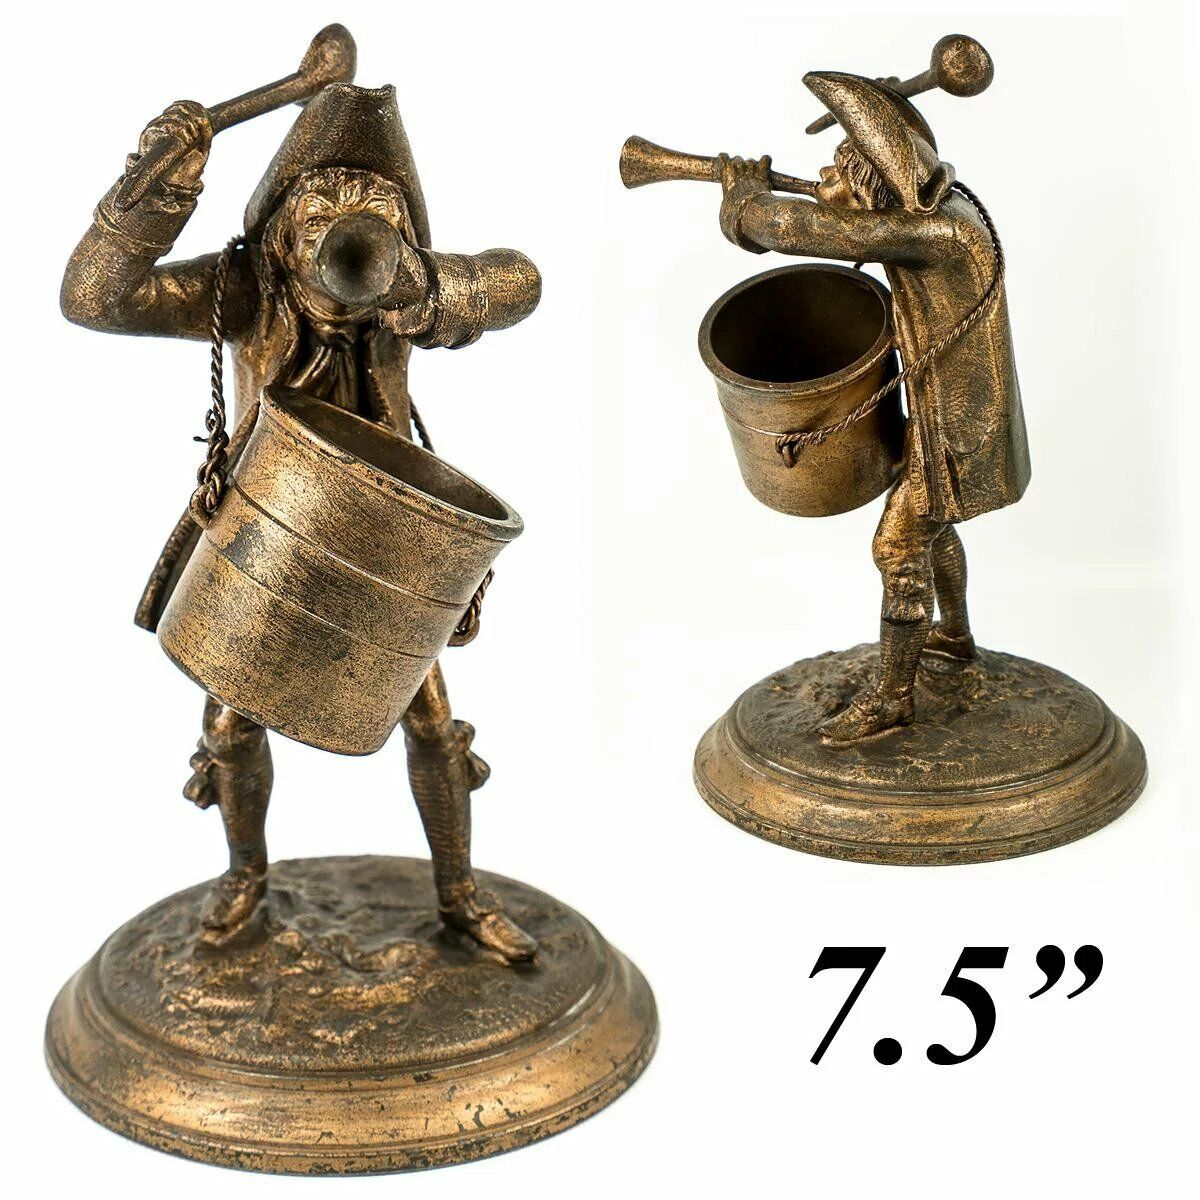 "Antique French Figural Match Holder, 7.5"" Revolutionary Soldier, Bugle and Spoon"